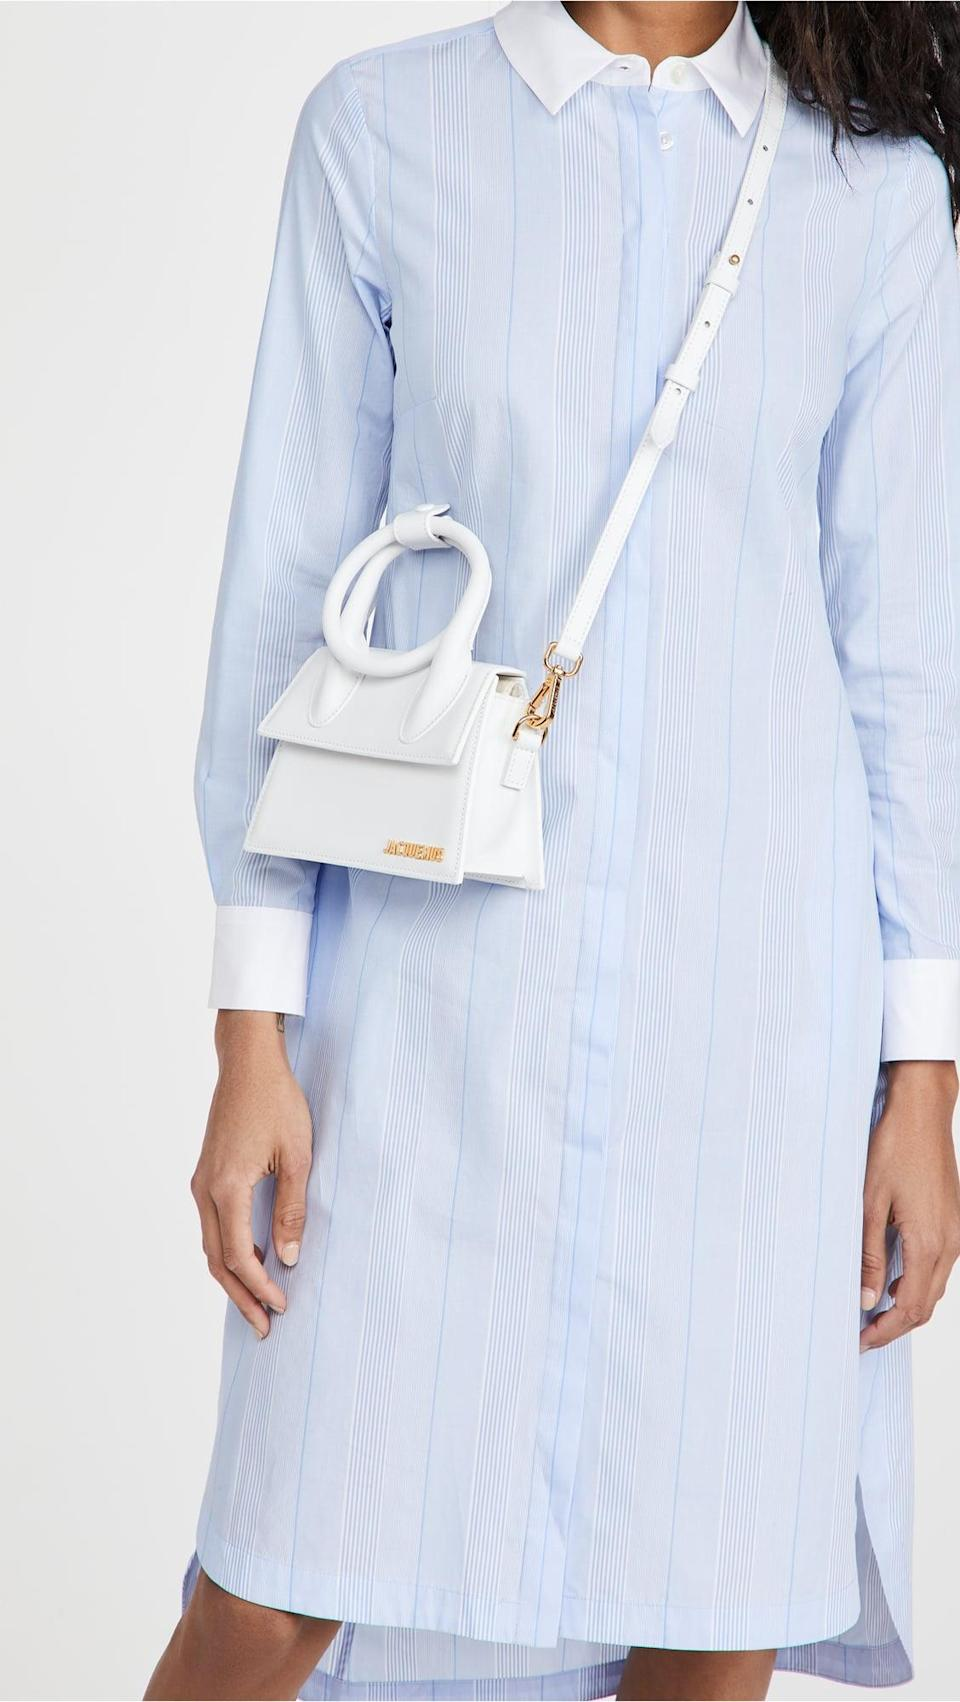 <p>This <span>Jacquemus Le Chiquito Noeud Bag </span> ($715) is so chic and minimal.</p>